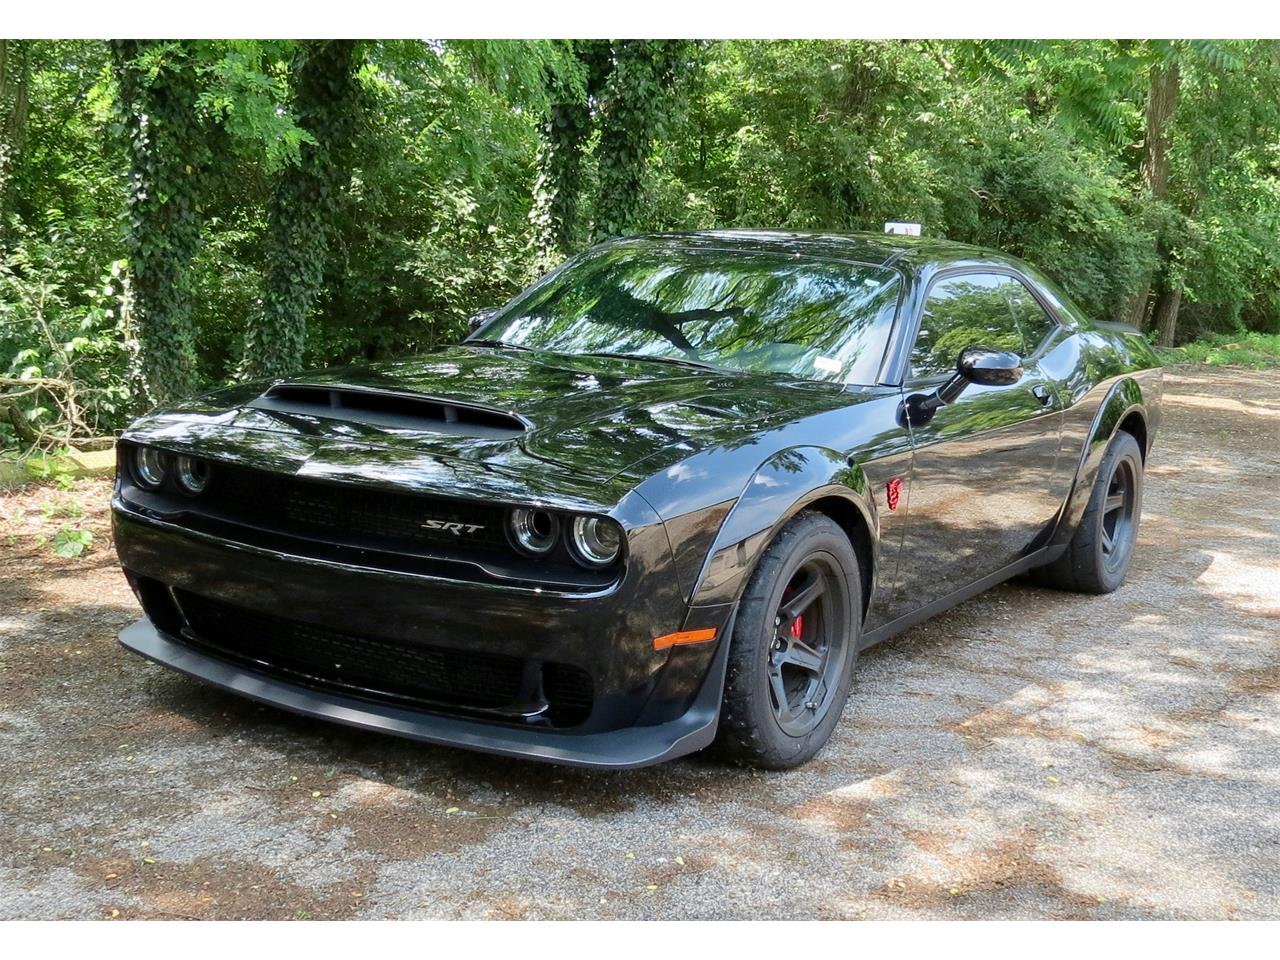 For Sale: 2018 Dodge Demon in Dayton, Ohio